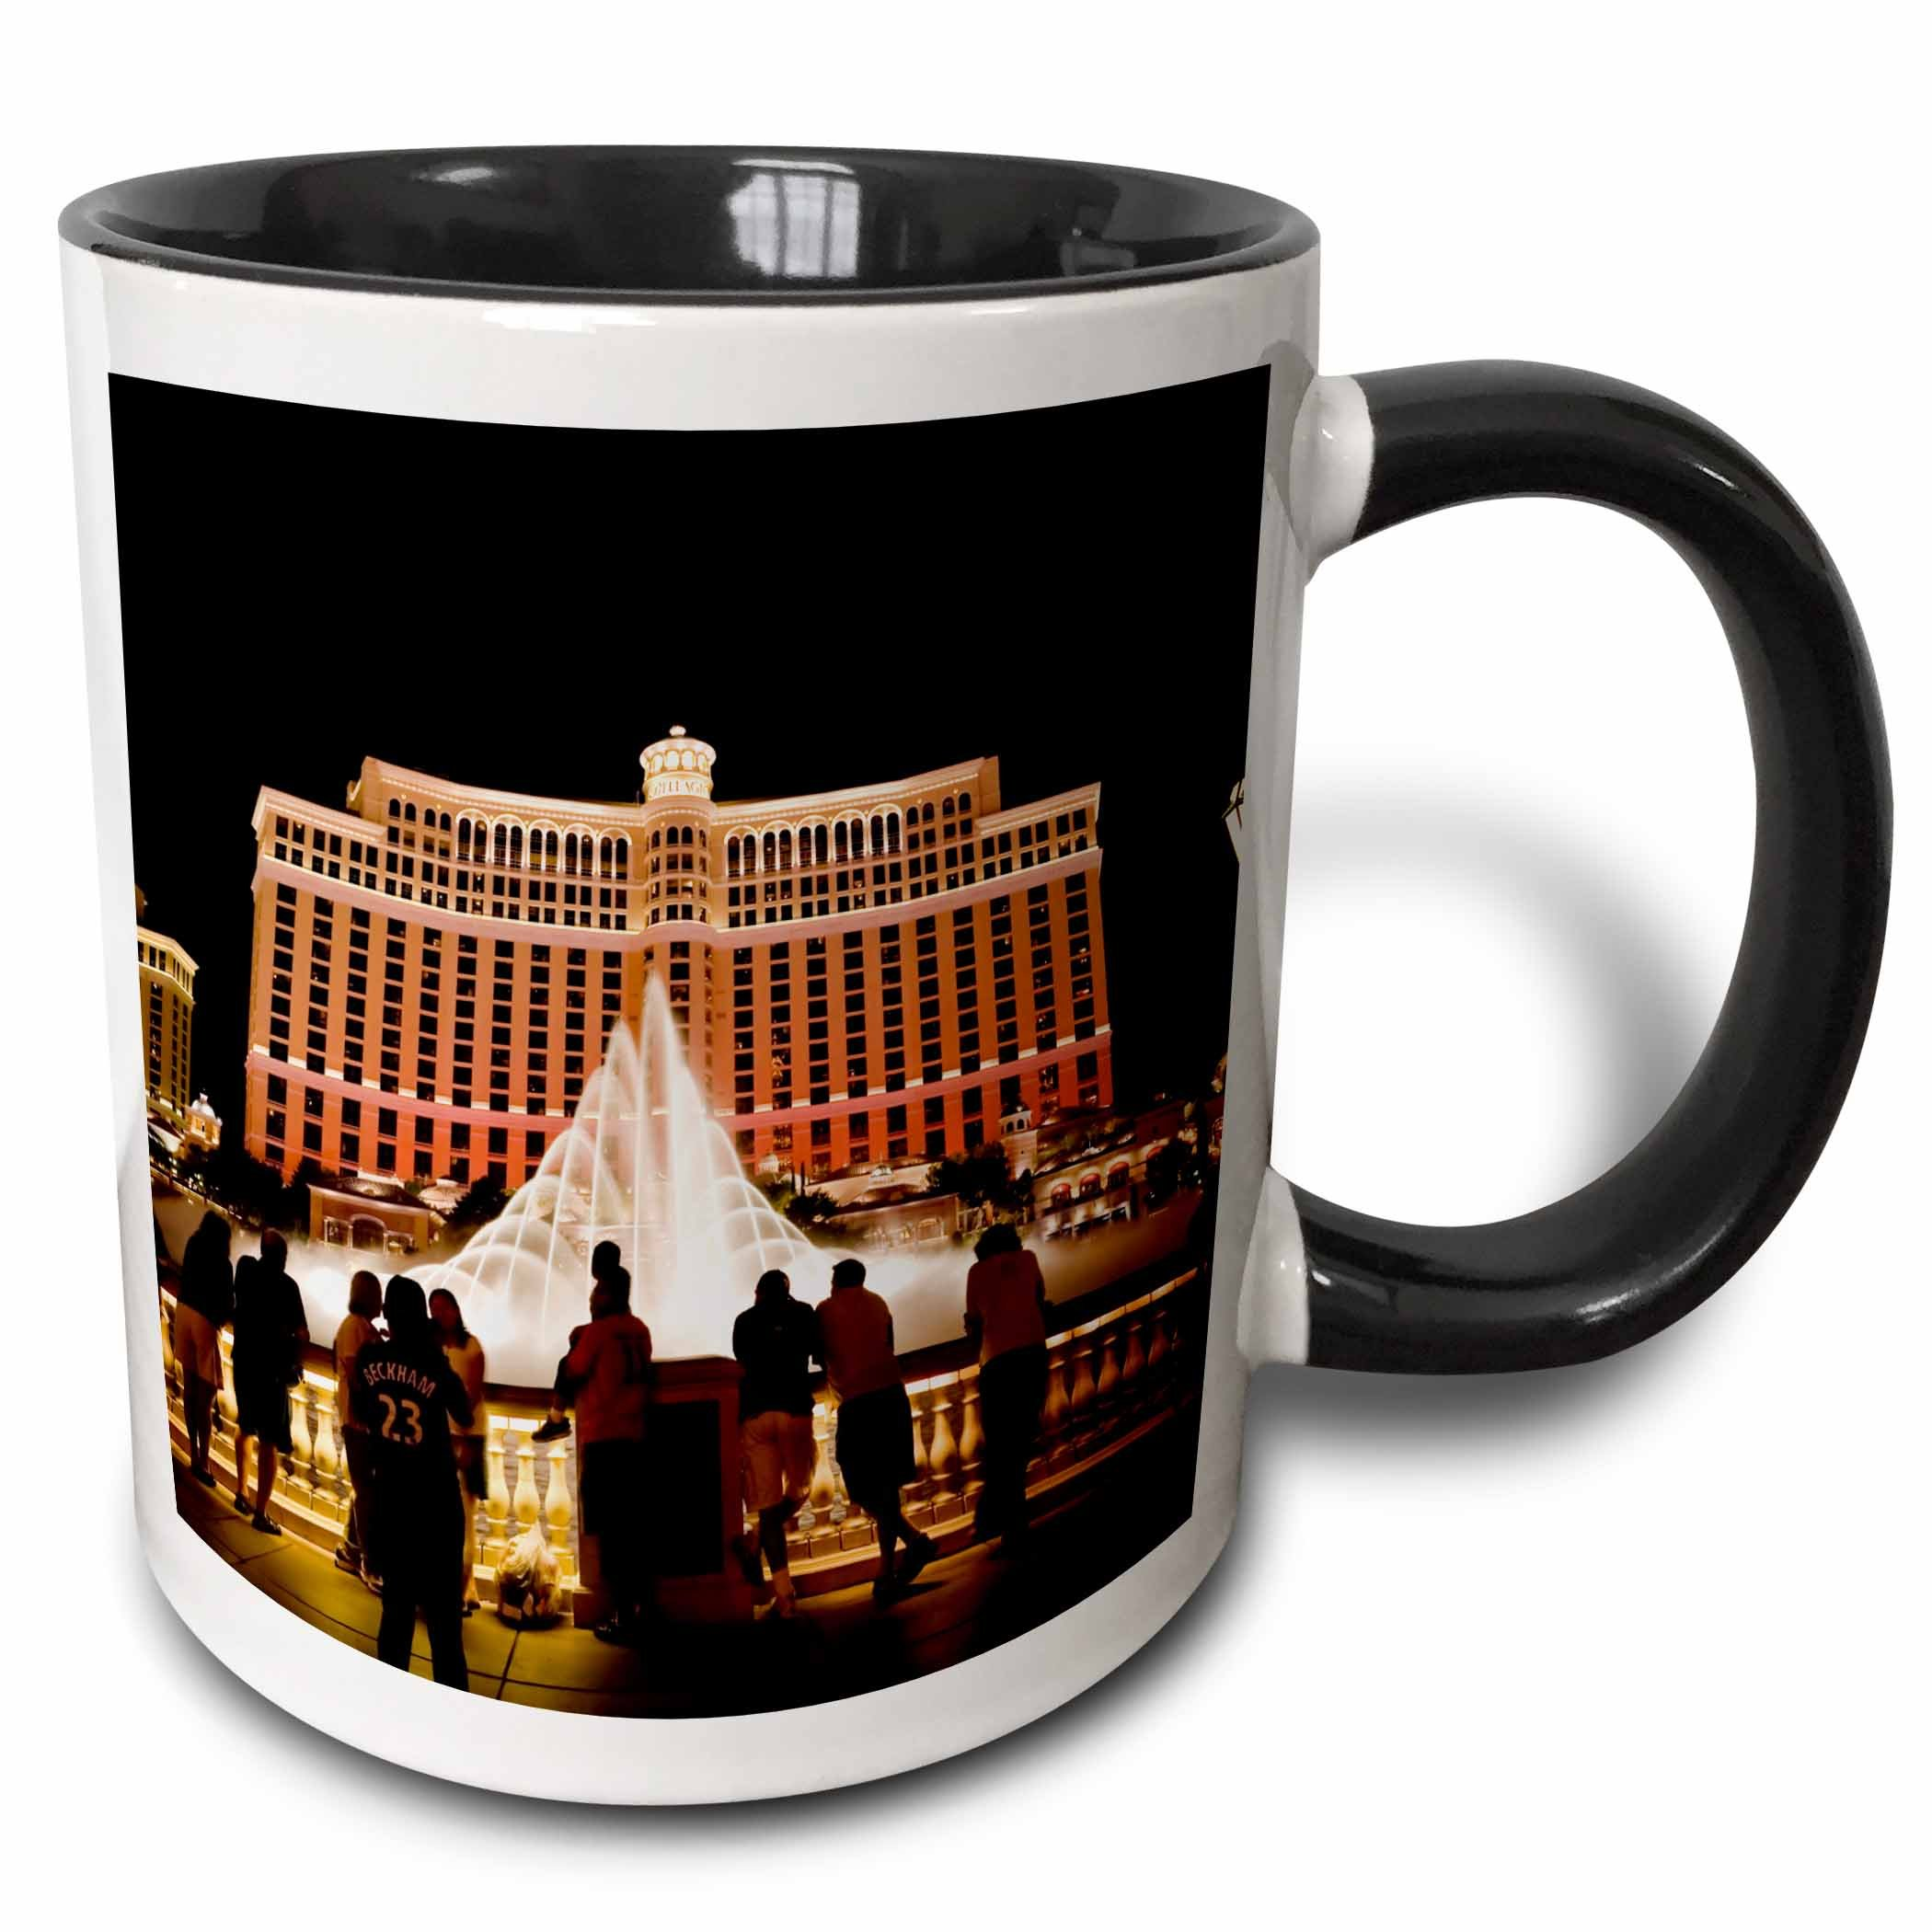 3dRose mug_92182_4 Nevada, Las Vegas, Bellagio Hotel and Casino-Us29 Bbr0061-Brent Bergheim Ceramic, 11oz, Black/White